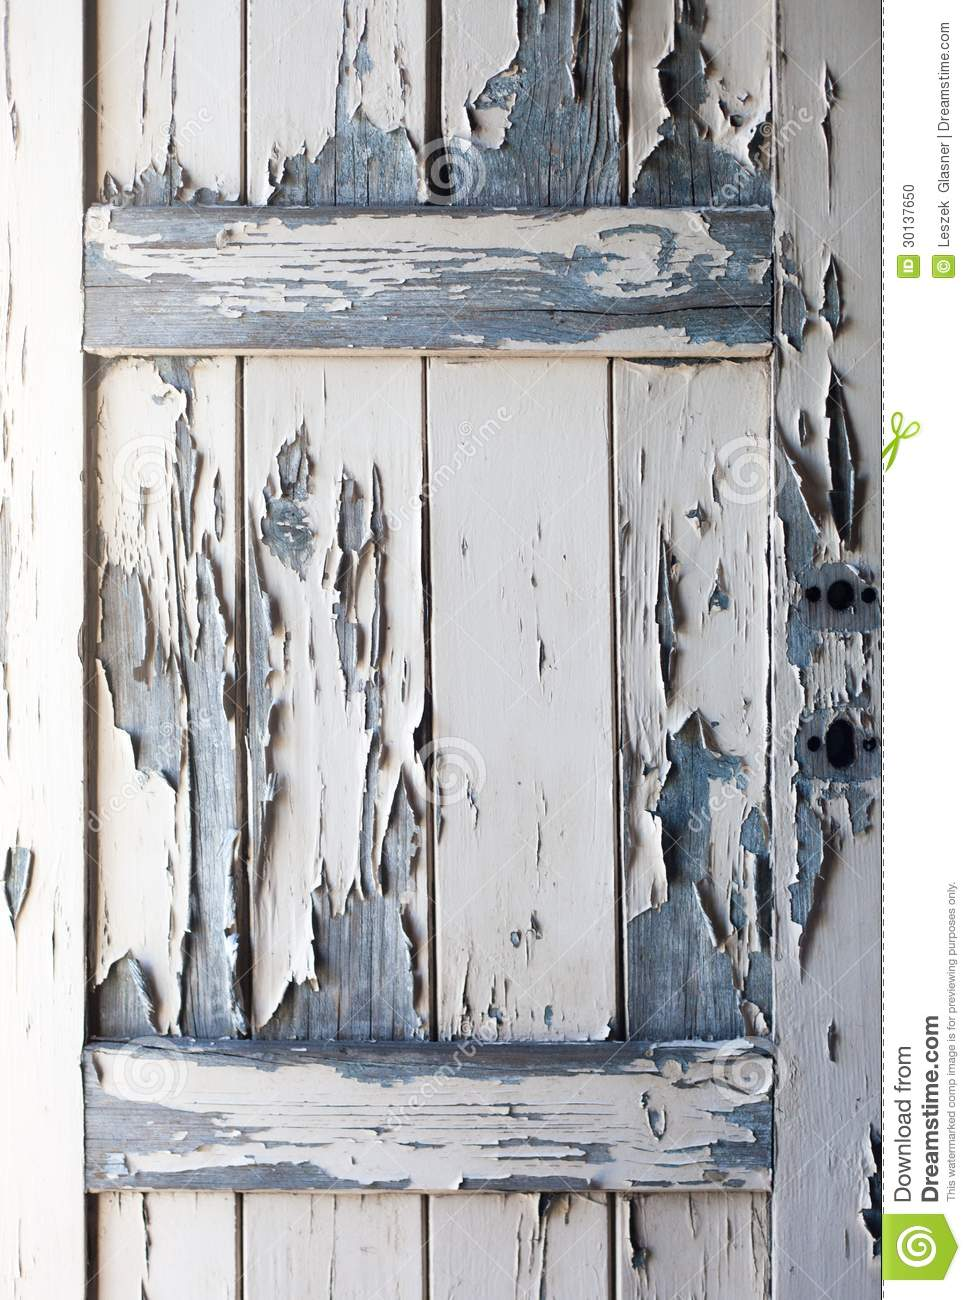 Peeling Paint On Old Wooden Door, Texture Stock Photo ...